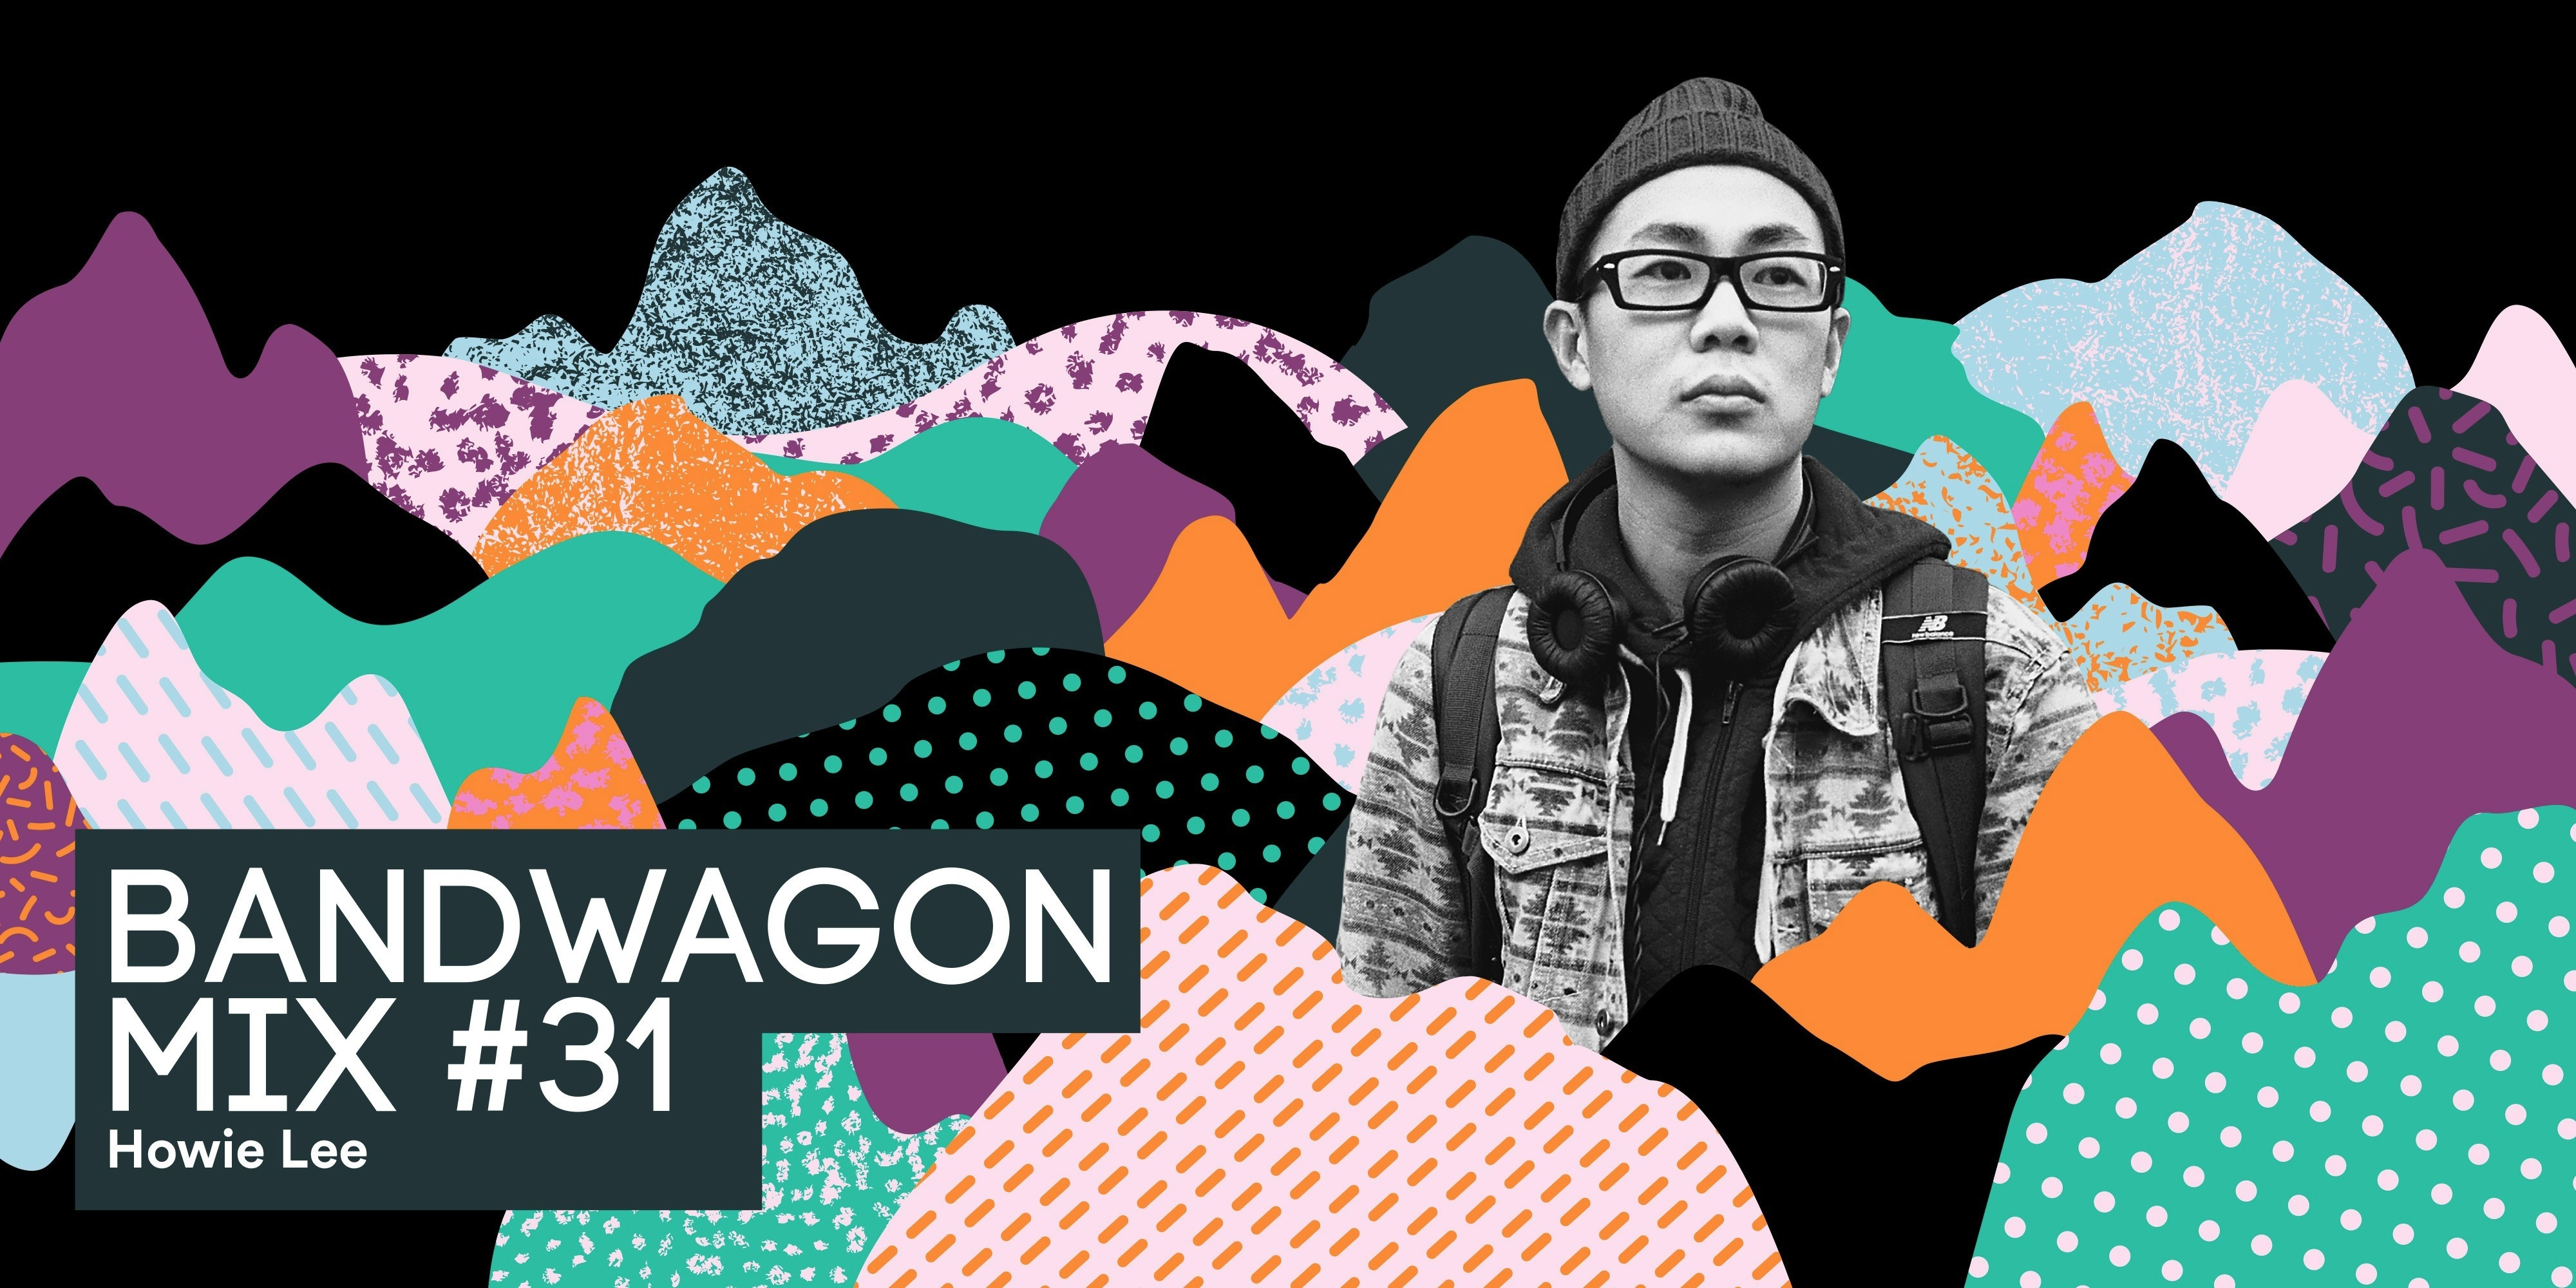 Bandwagon Mix #31: Howie Lee